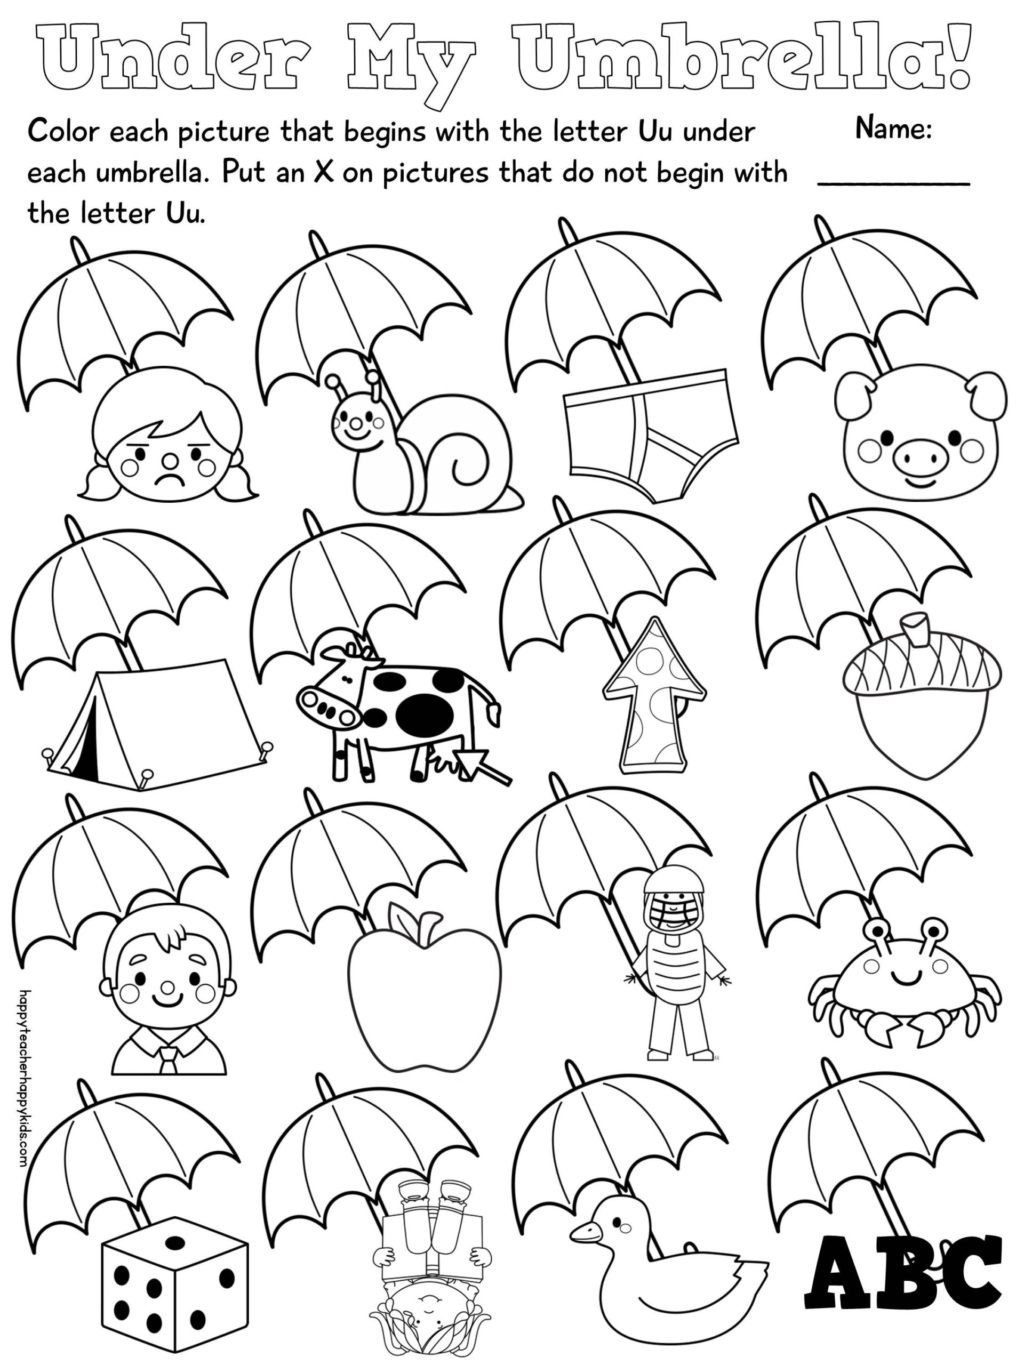 Feelings Worksheets for Preschoolers Worksheet Printable Alphabet Activity Sheets Free Thising